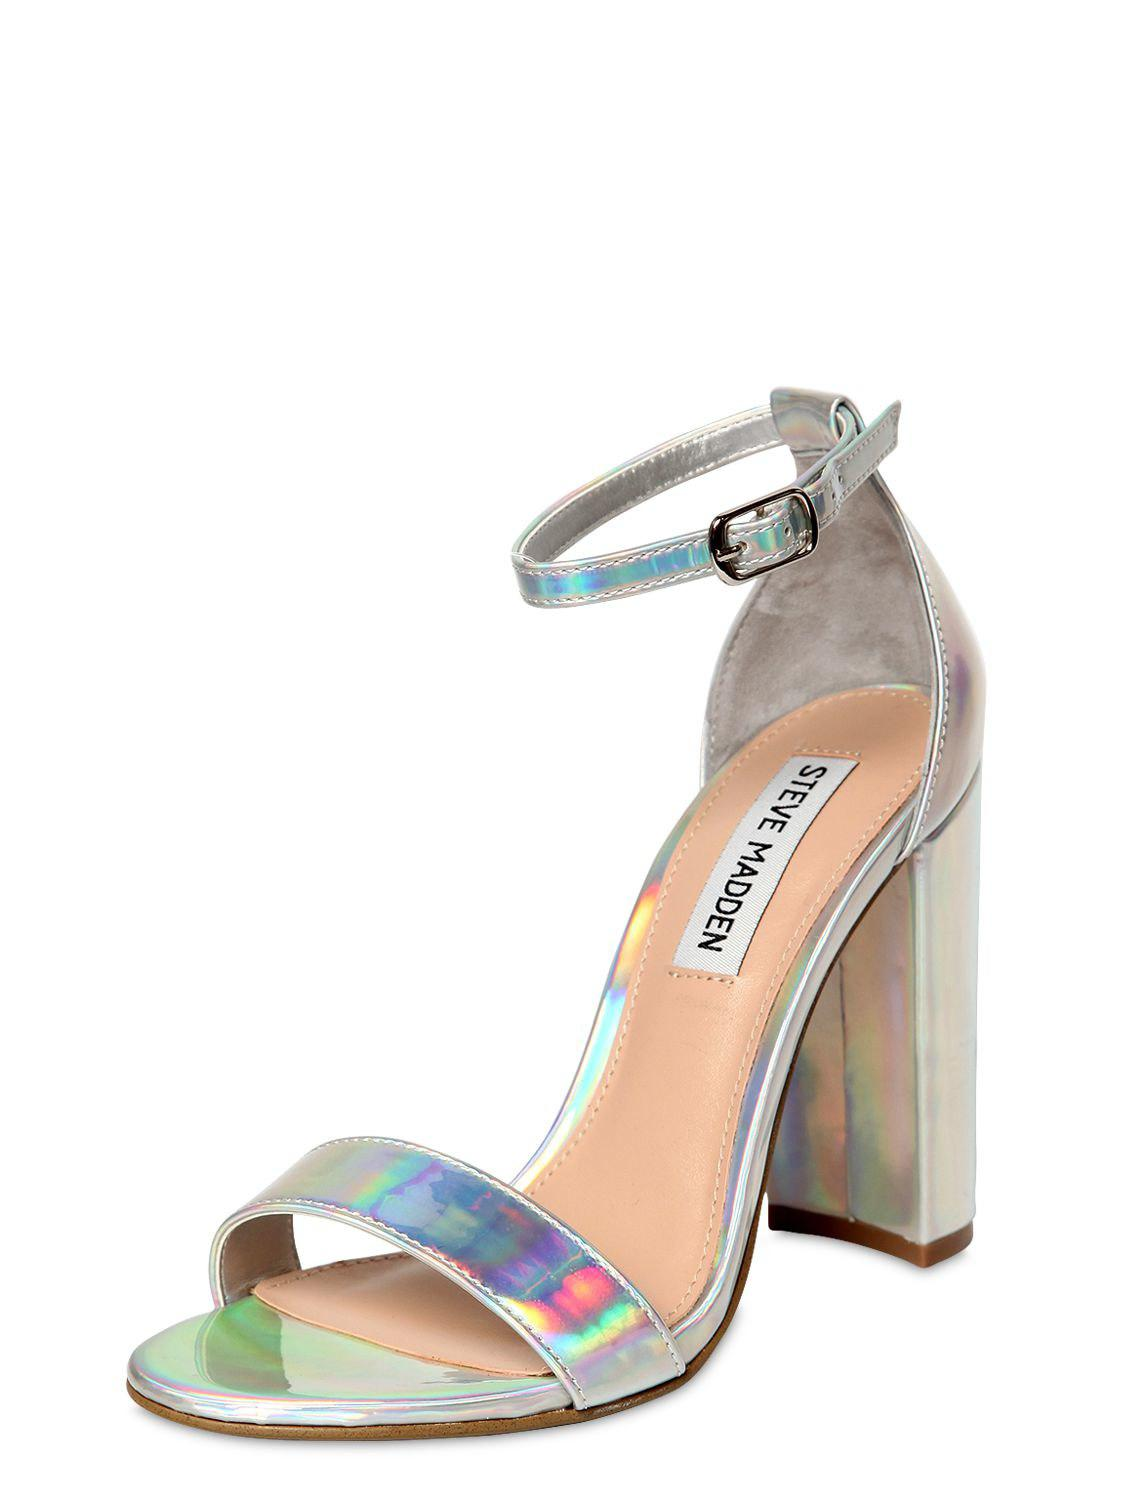 3715dcc15c2 Lyst - Steve Madden 100mm Carrson Iridescent Sandals in Metallic